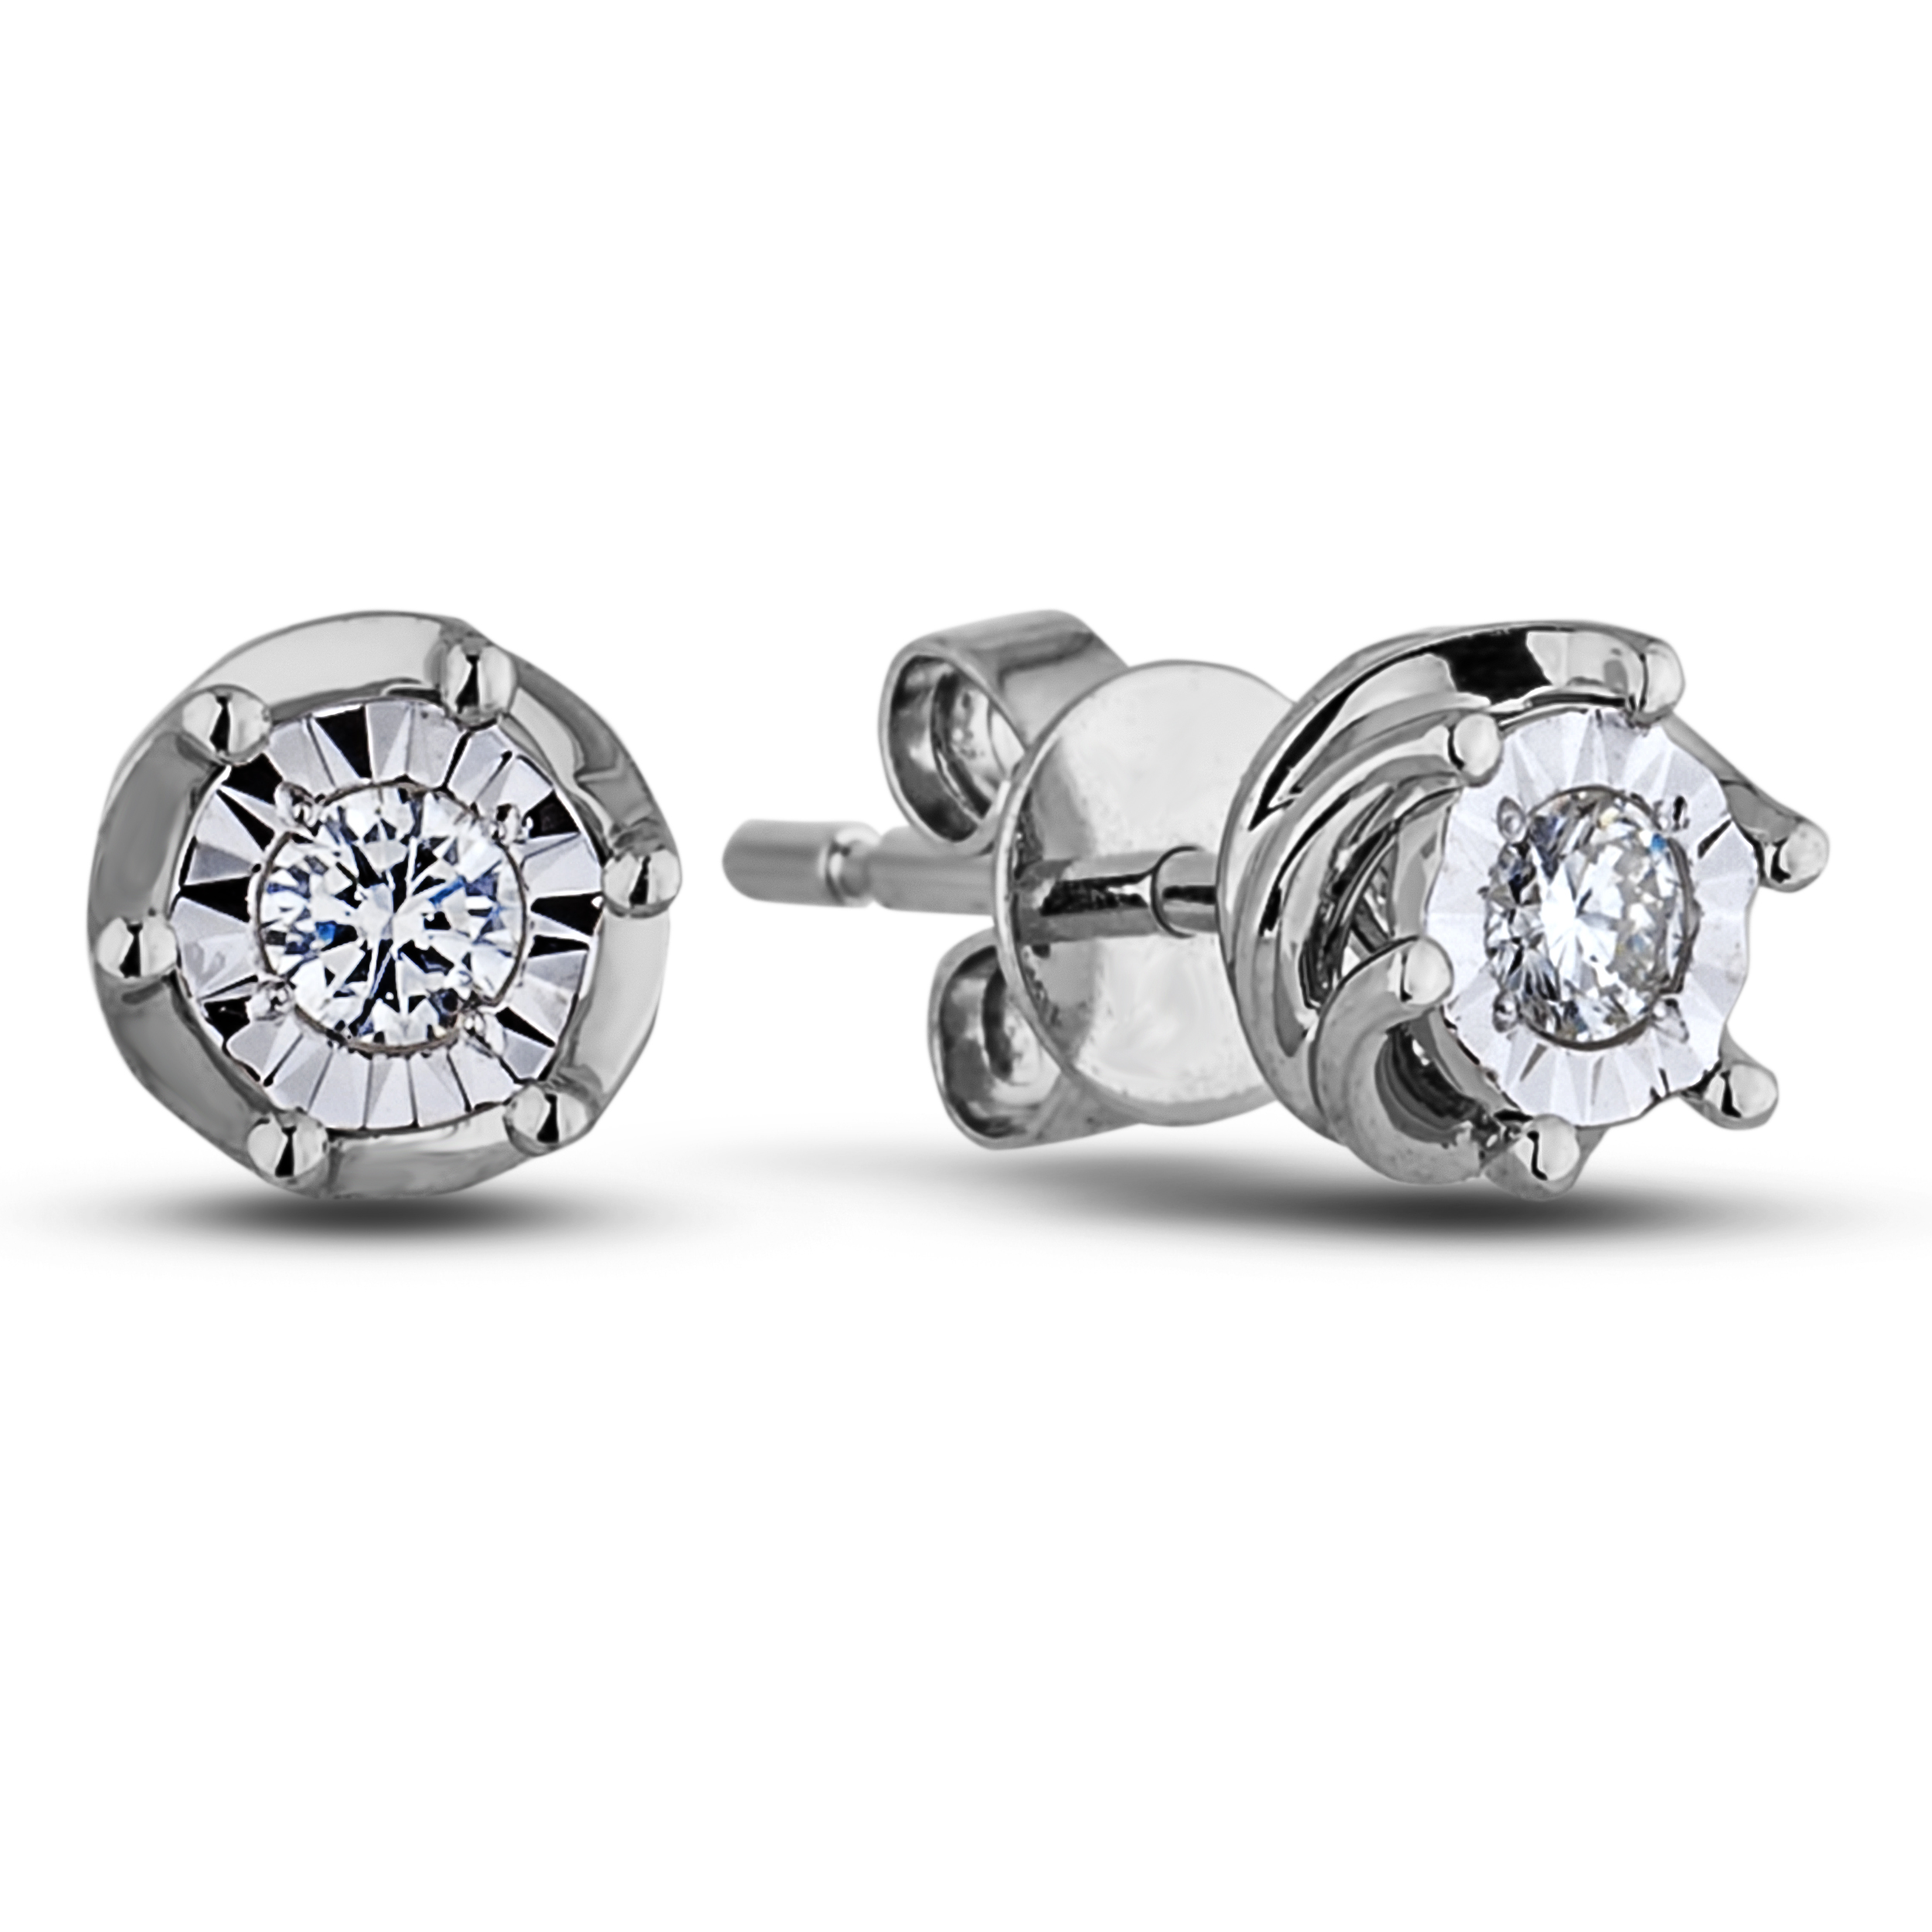 Diamond Stud Earrings JSL-AFCE0027 (Earrings)